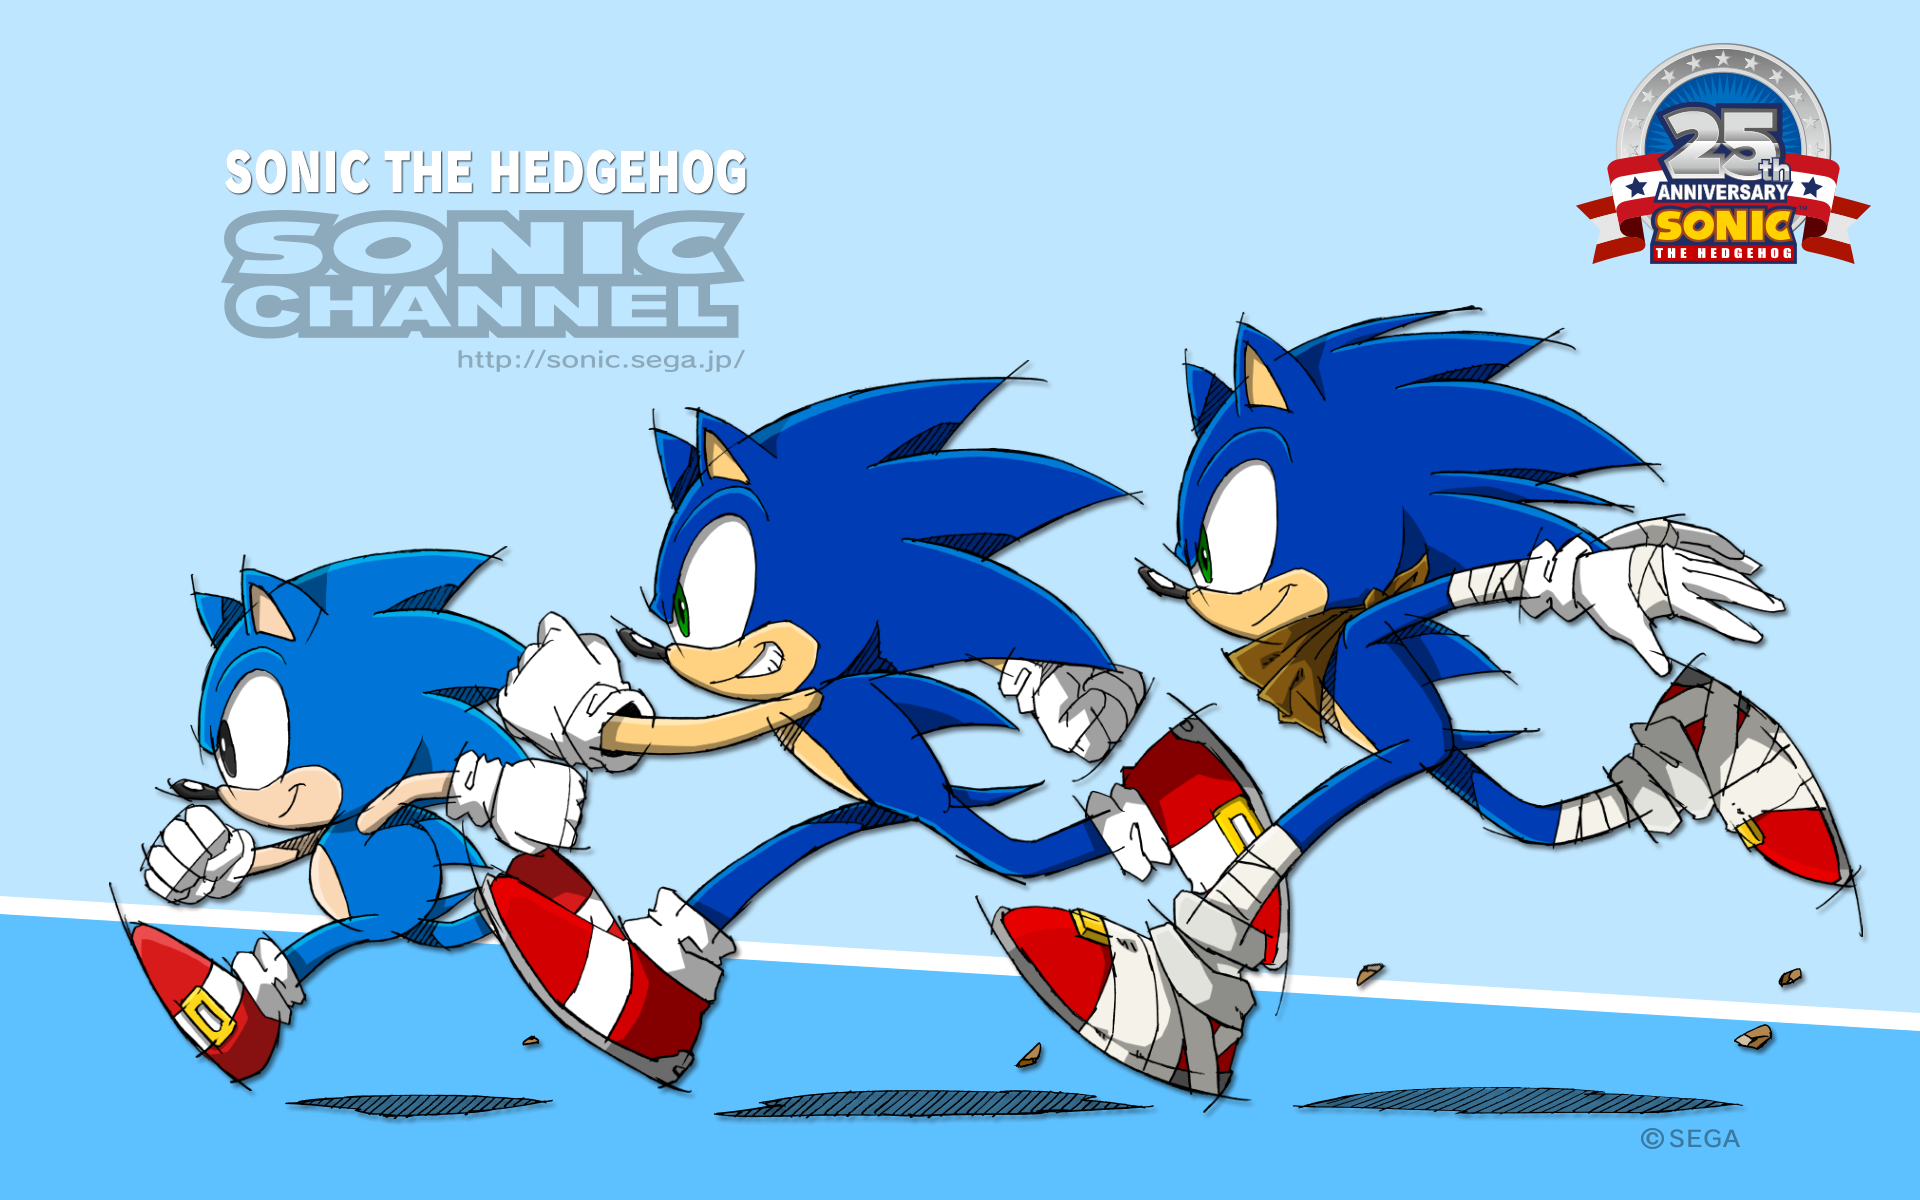 SONIC THE HEDGEHOG Th ANNIVERSARY HEDGE HO G CHANNEL Sonic